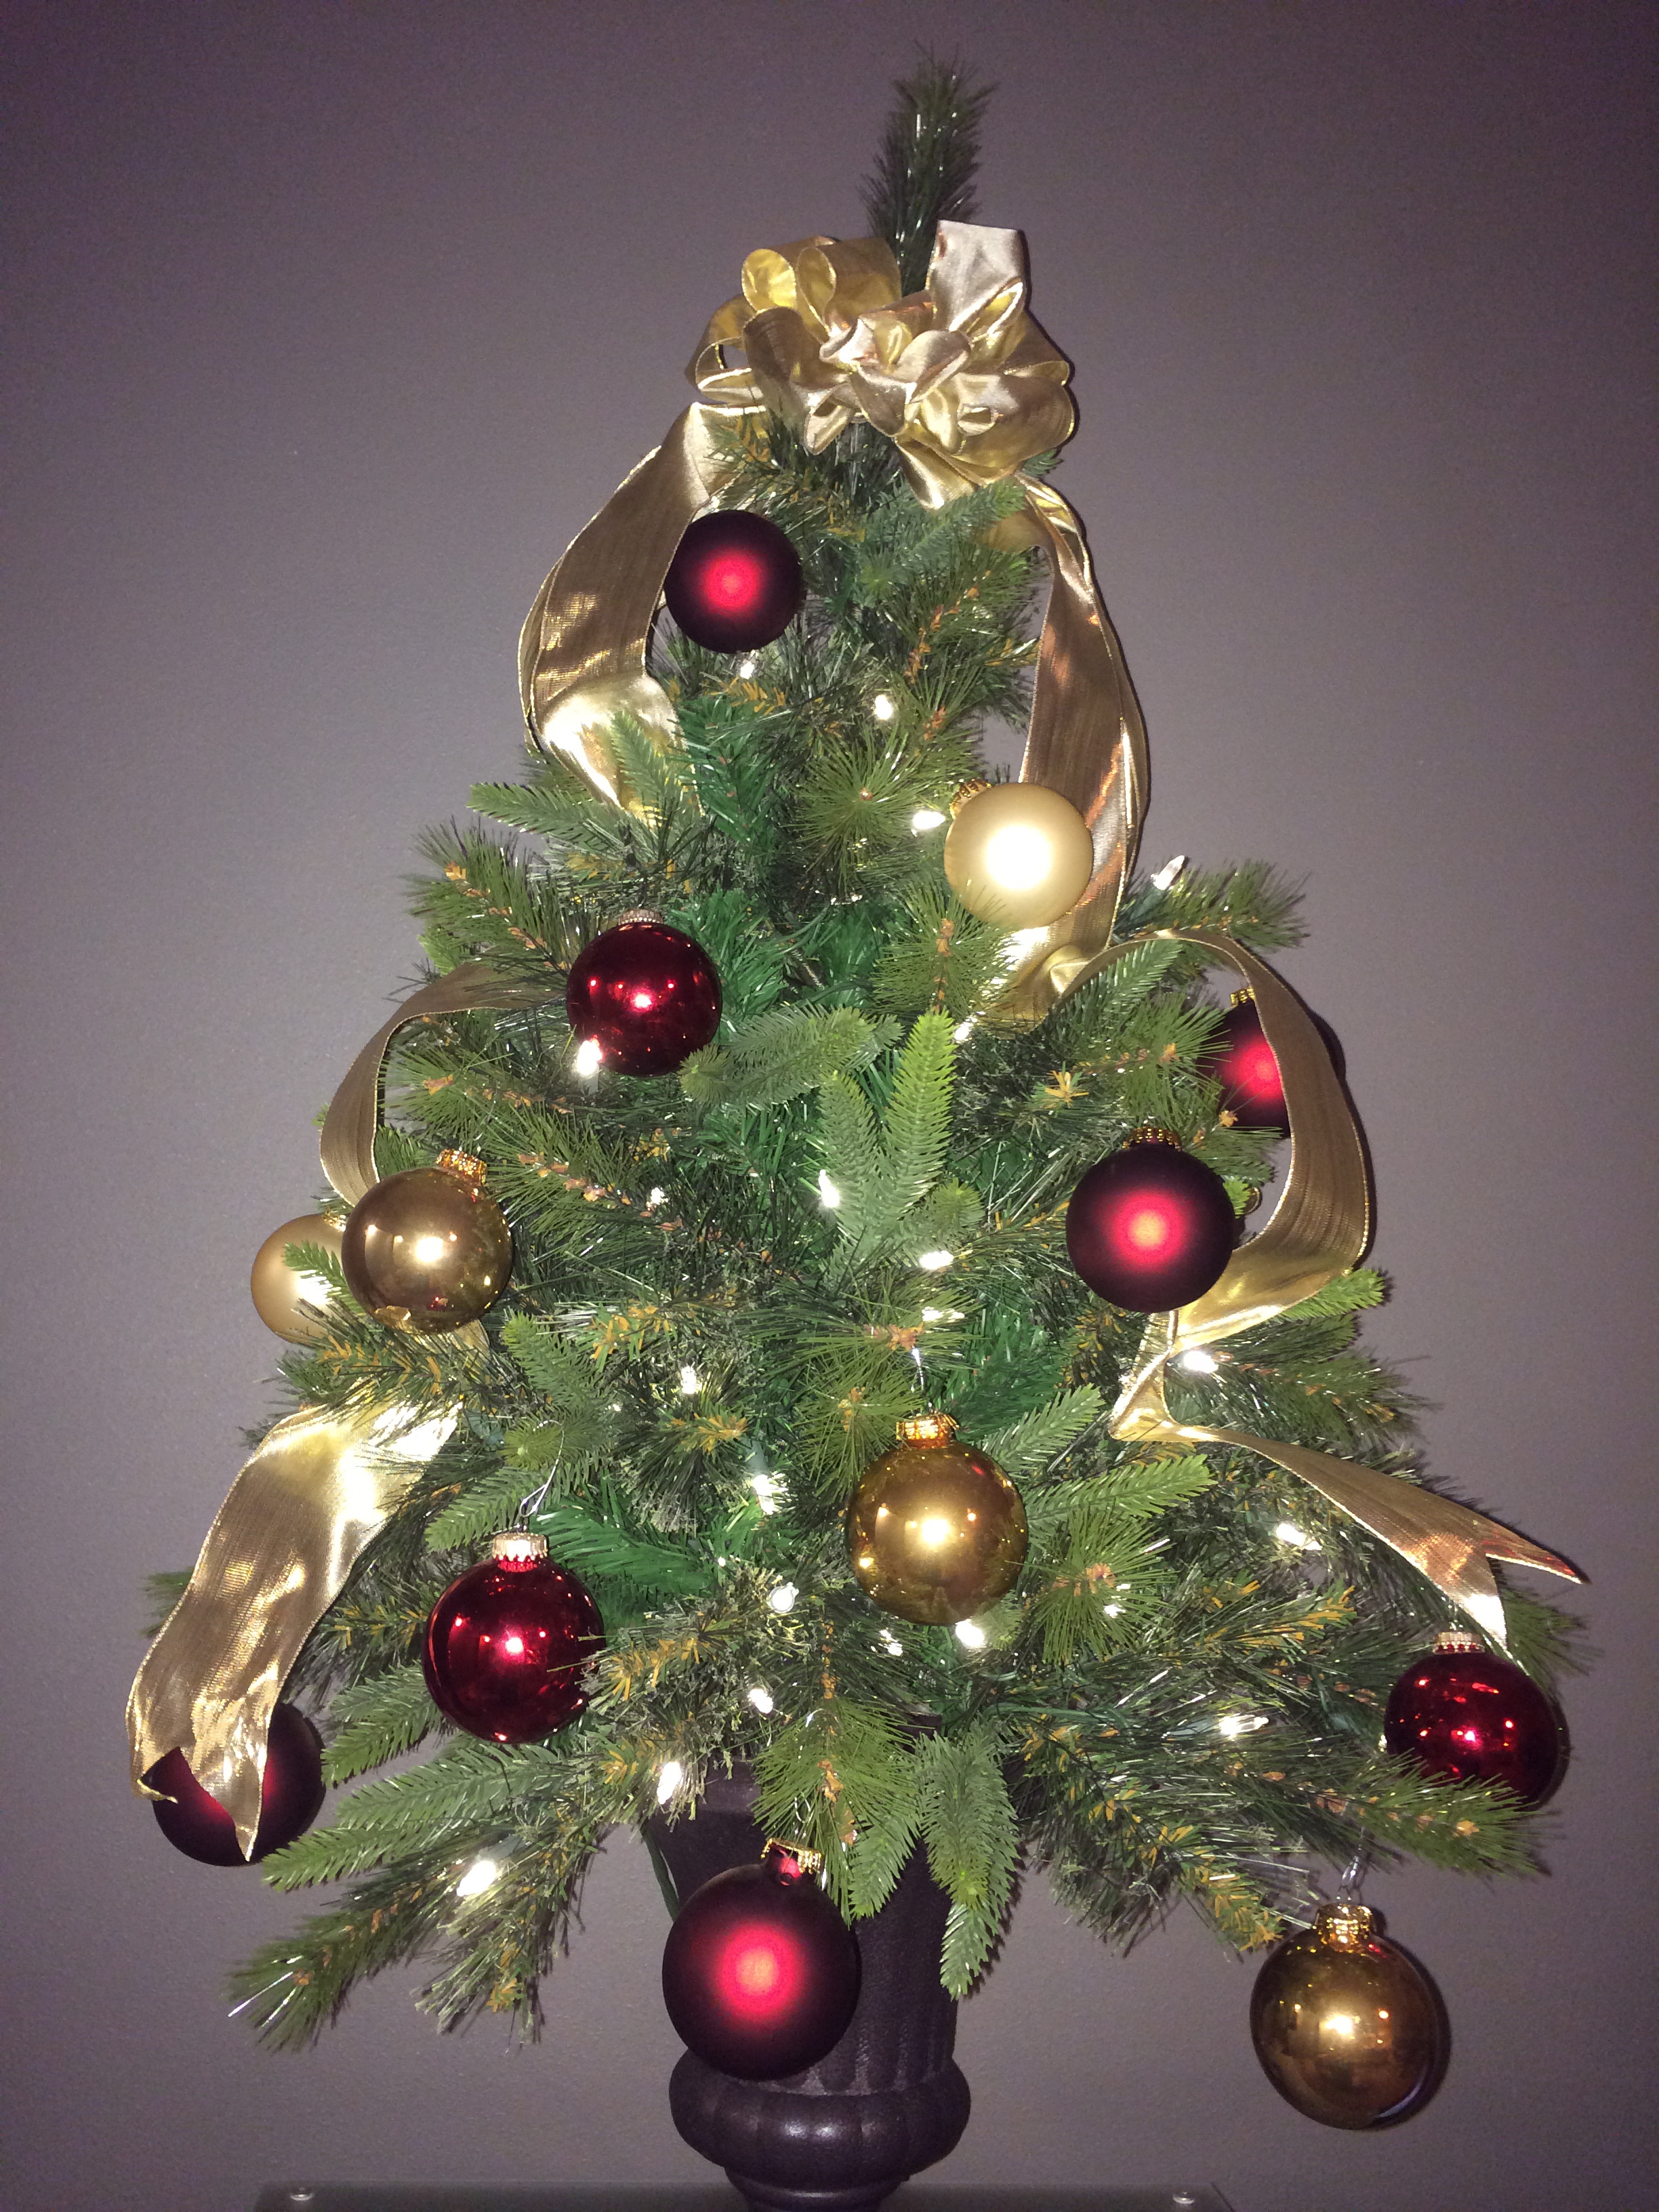 Christmas tree decorations ideas red and gold - Red And Gold Christmas Tree Decorations